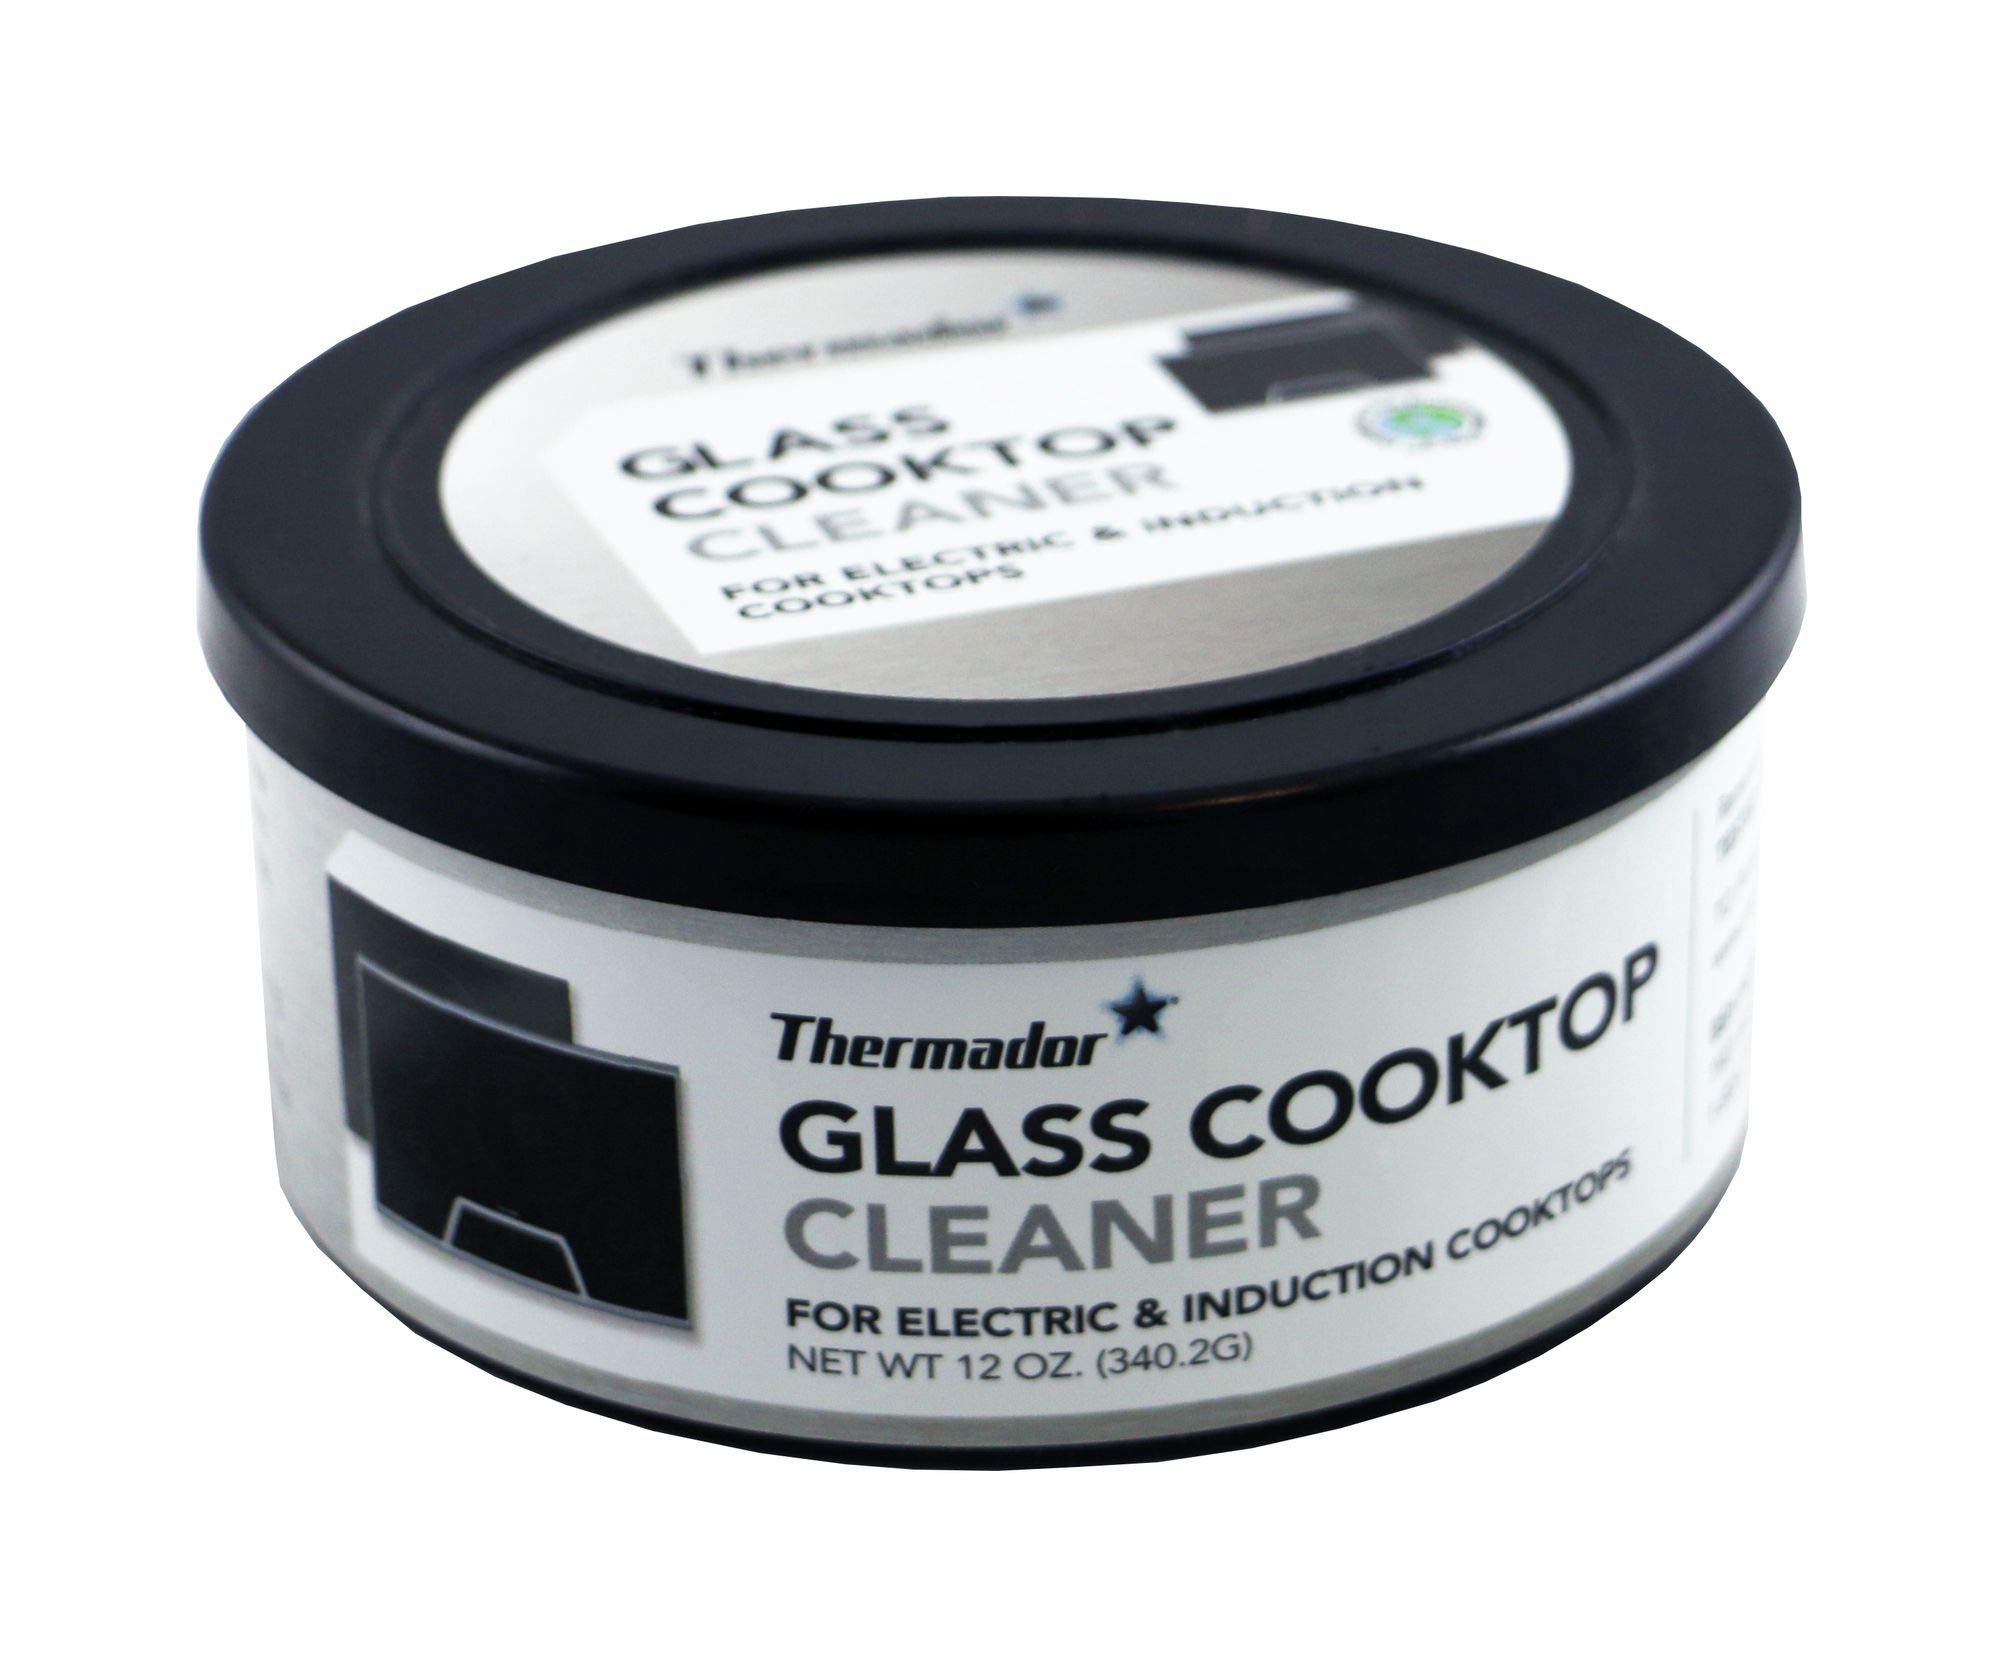 Thermador 12010031 Glass Cooktop Cleaner For electric & induction cooktops Set of Two 12-ounce tubs by Thermador